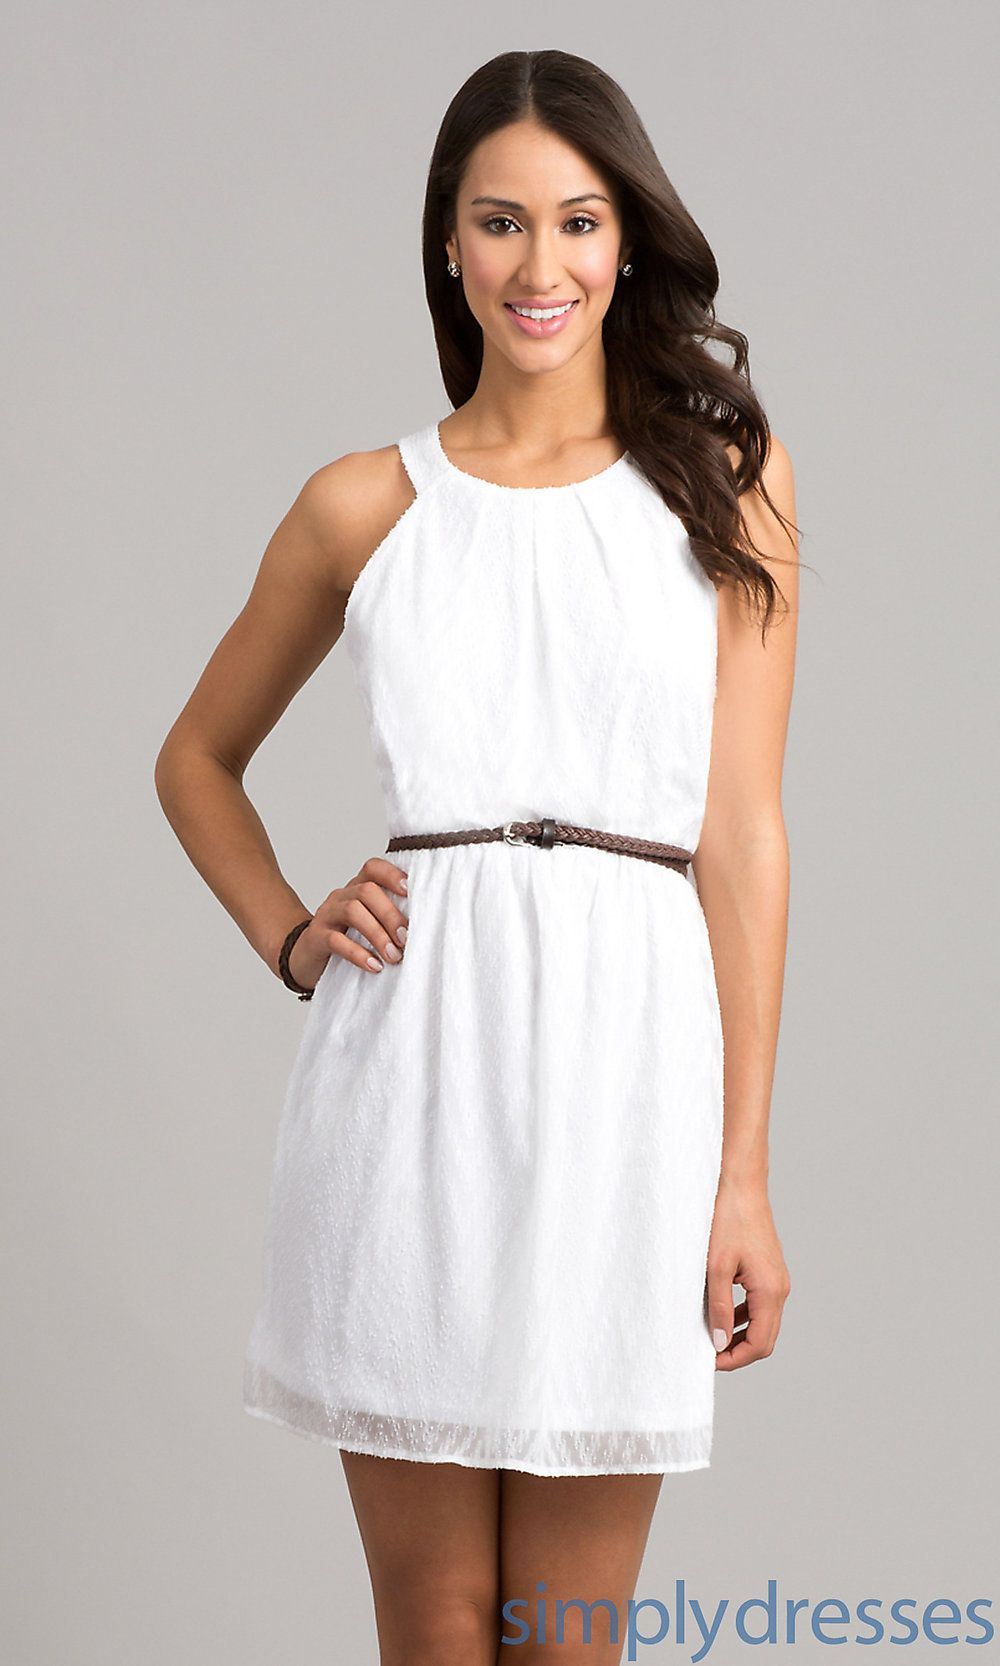 White Casual Graduation Dresses  Cool Casual Dresses  Pinterest ...